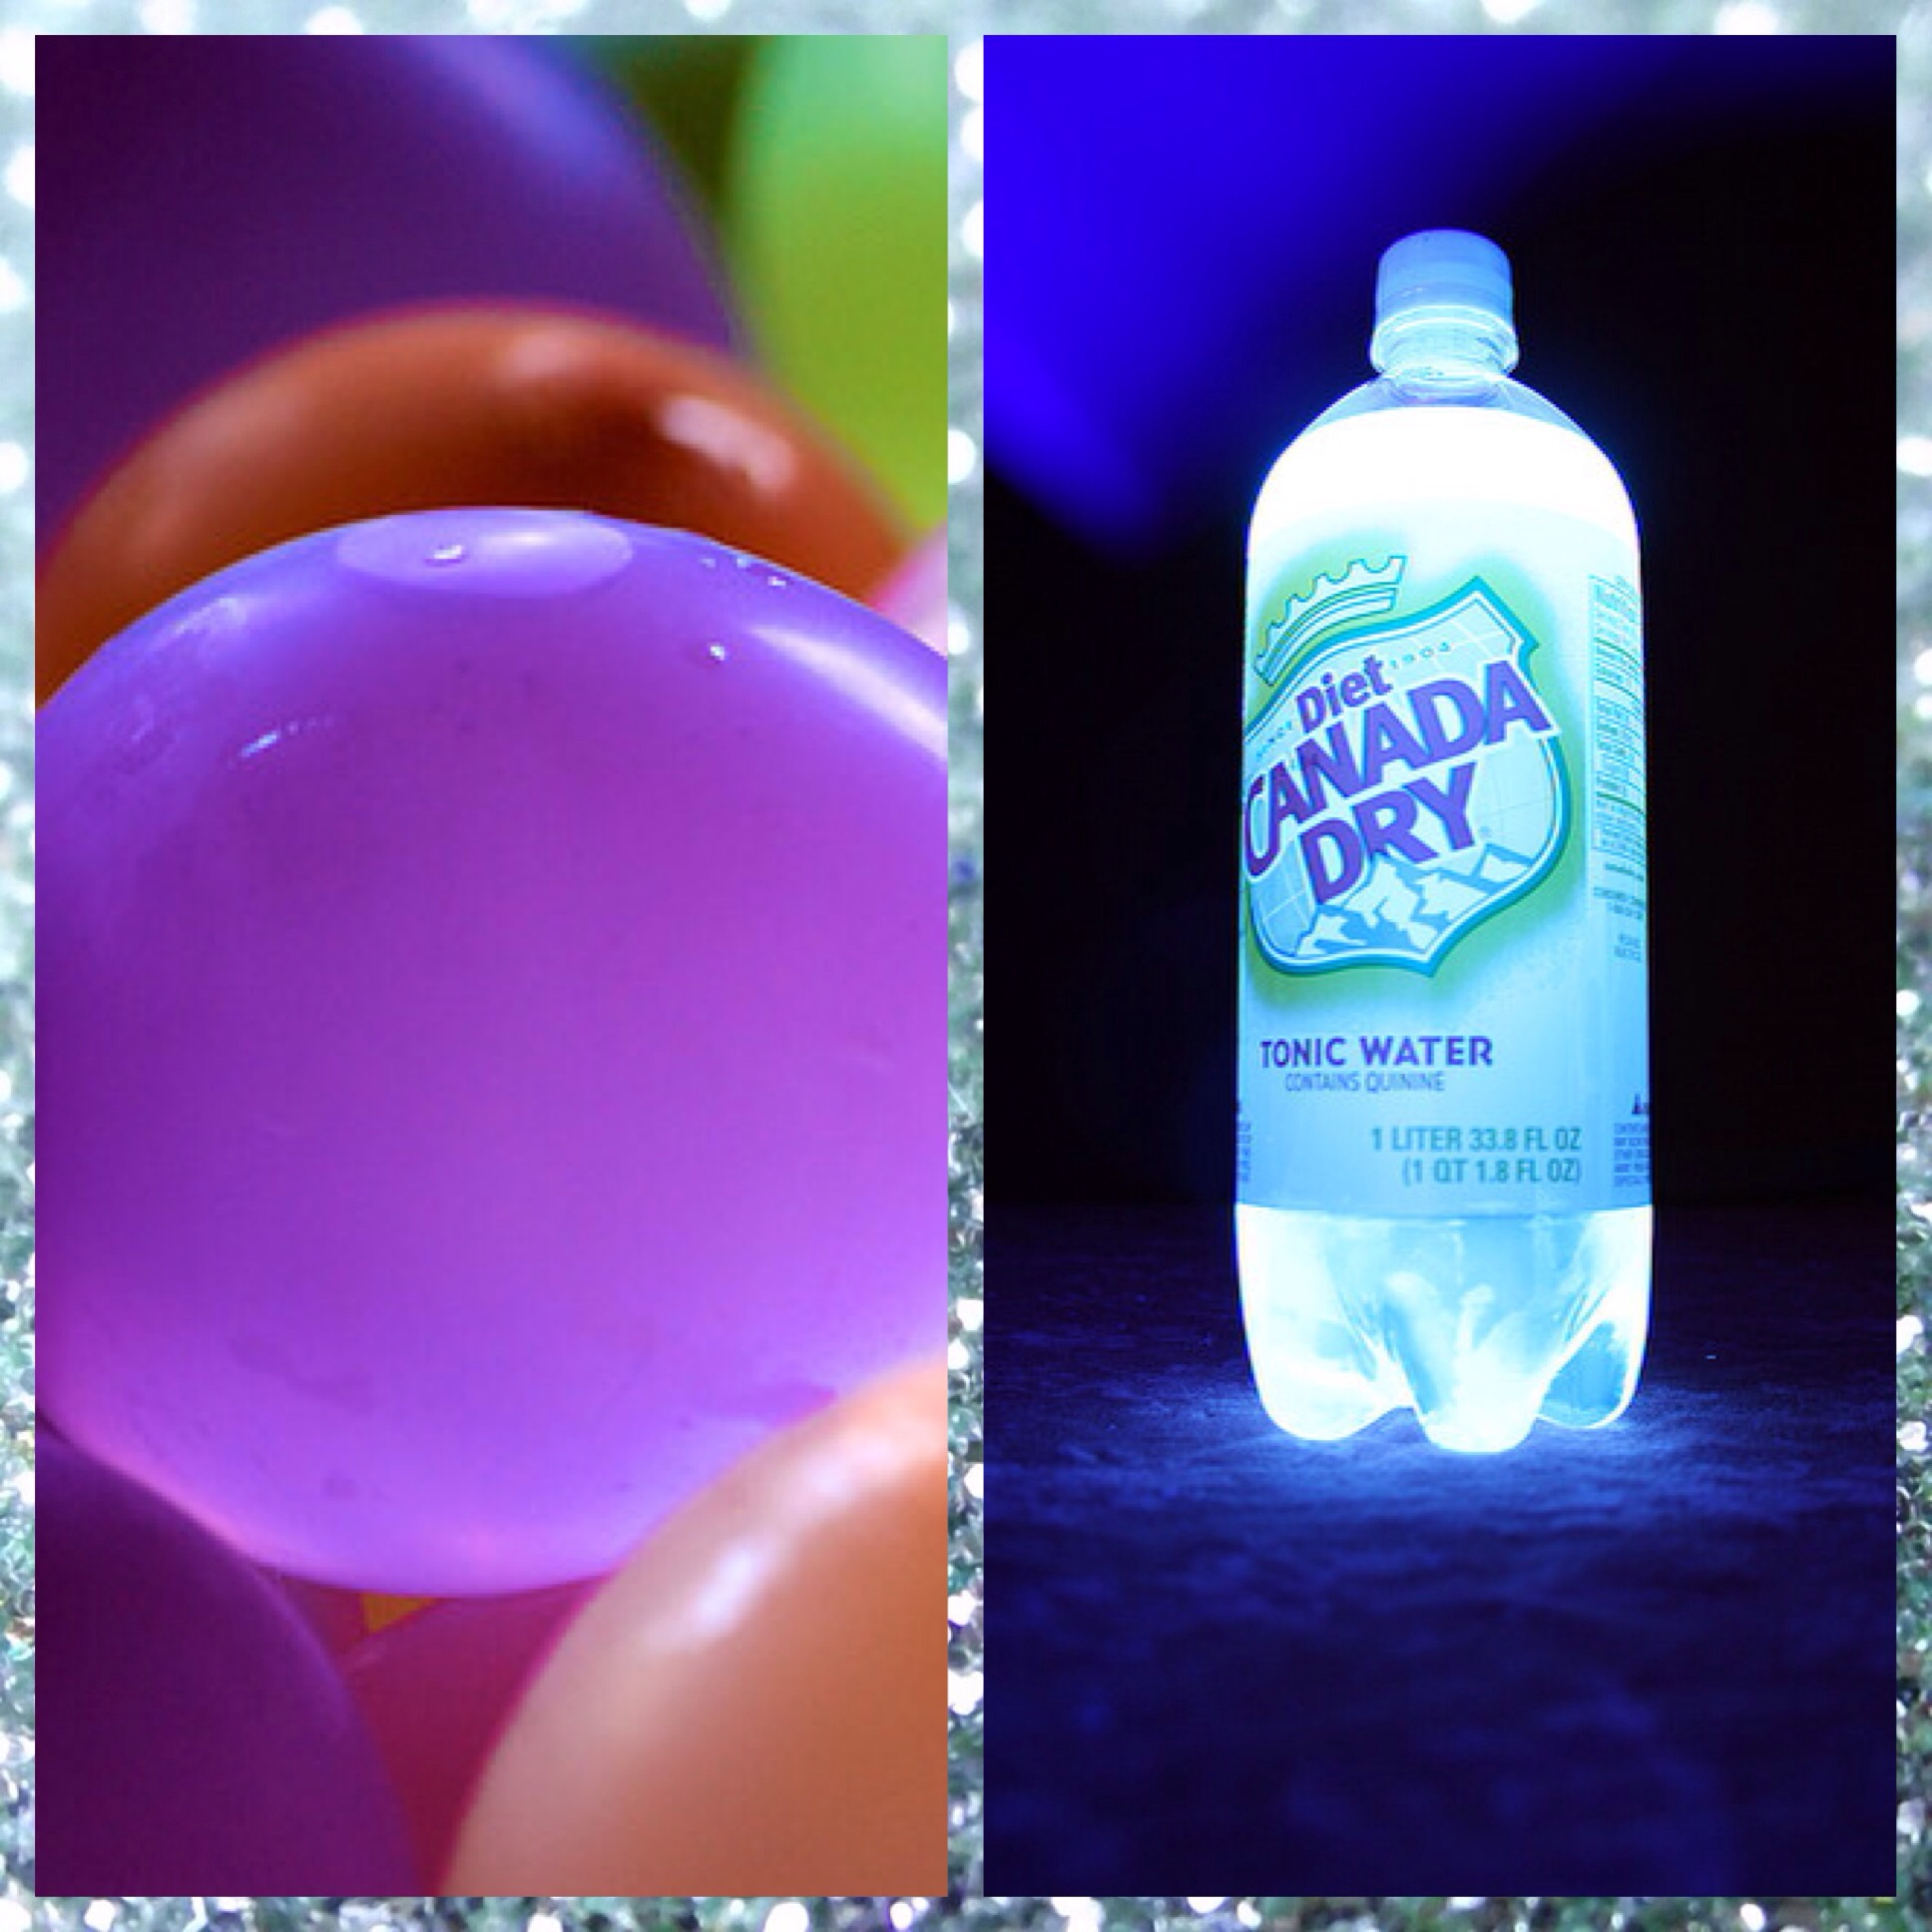 water balloons and glowing tonic water